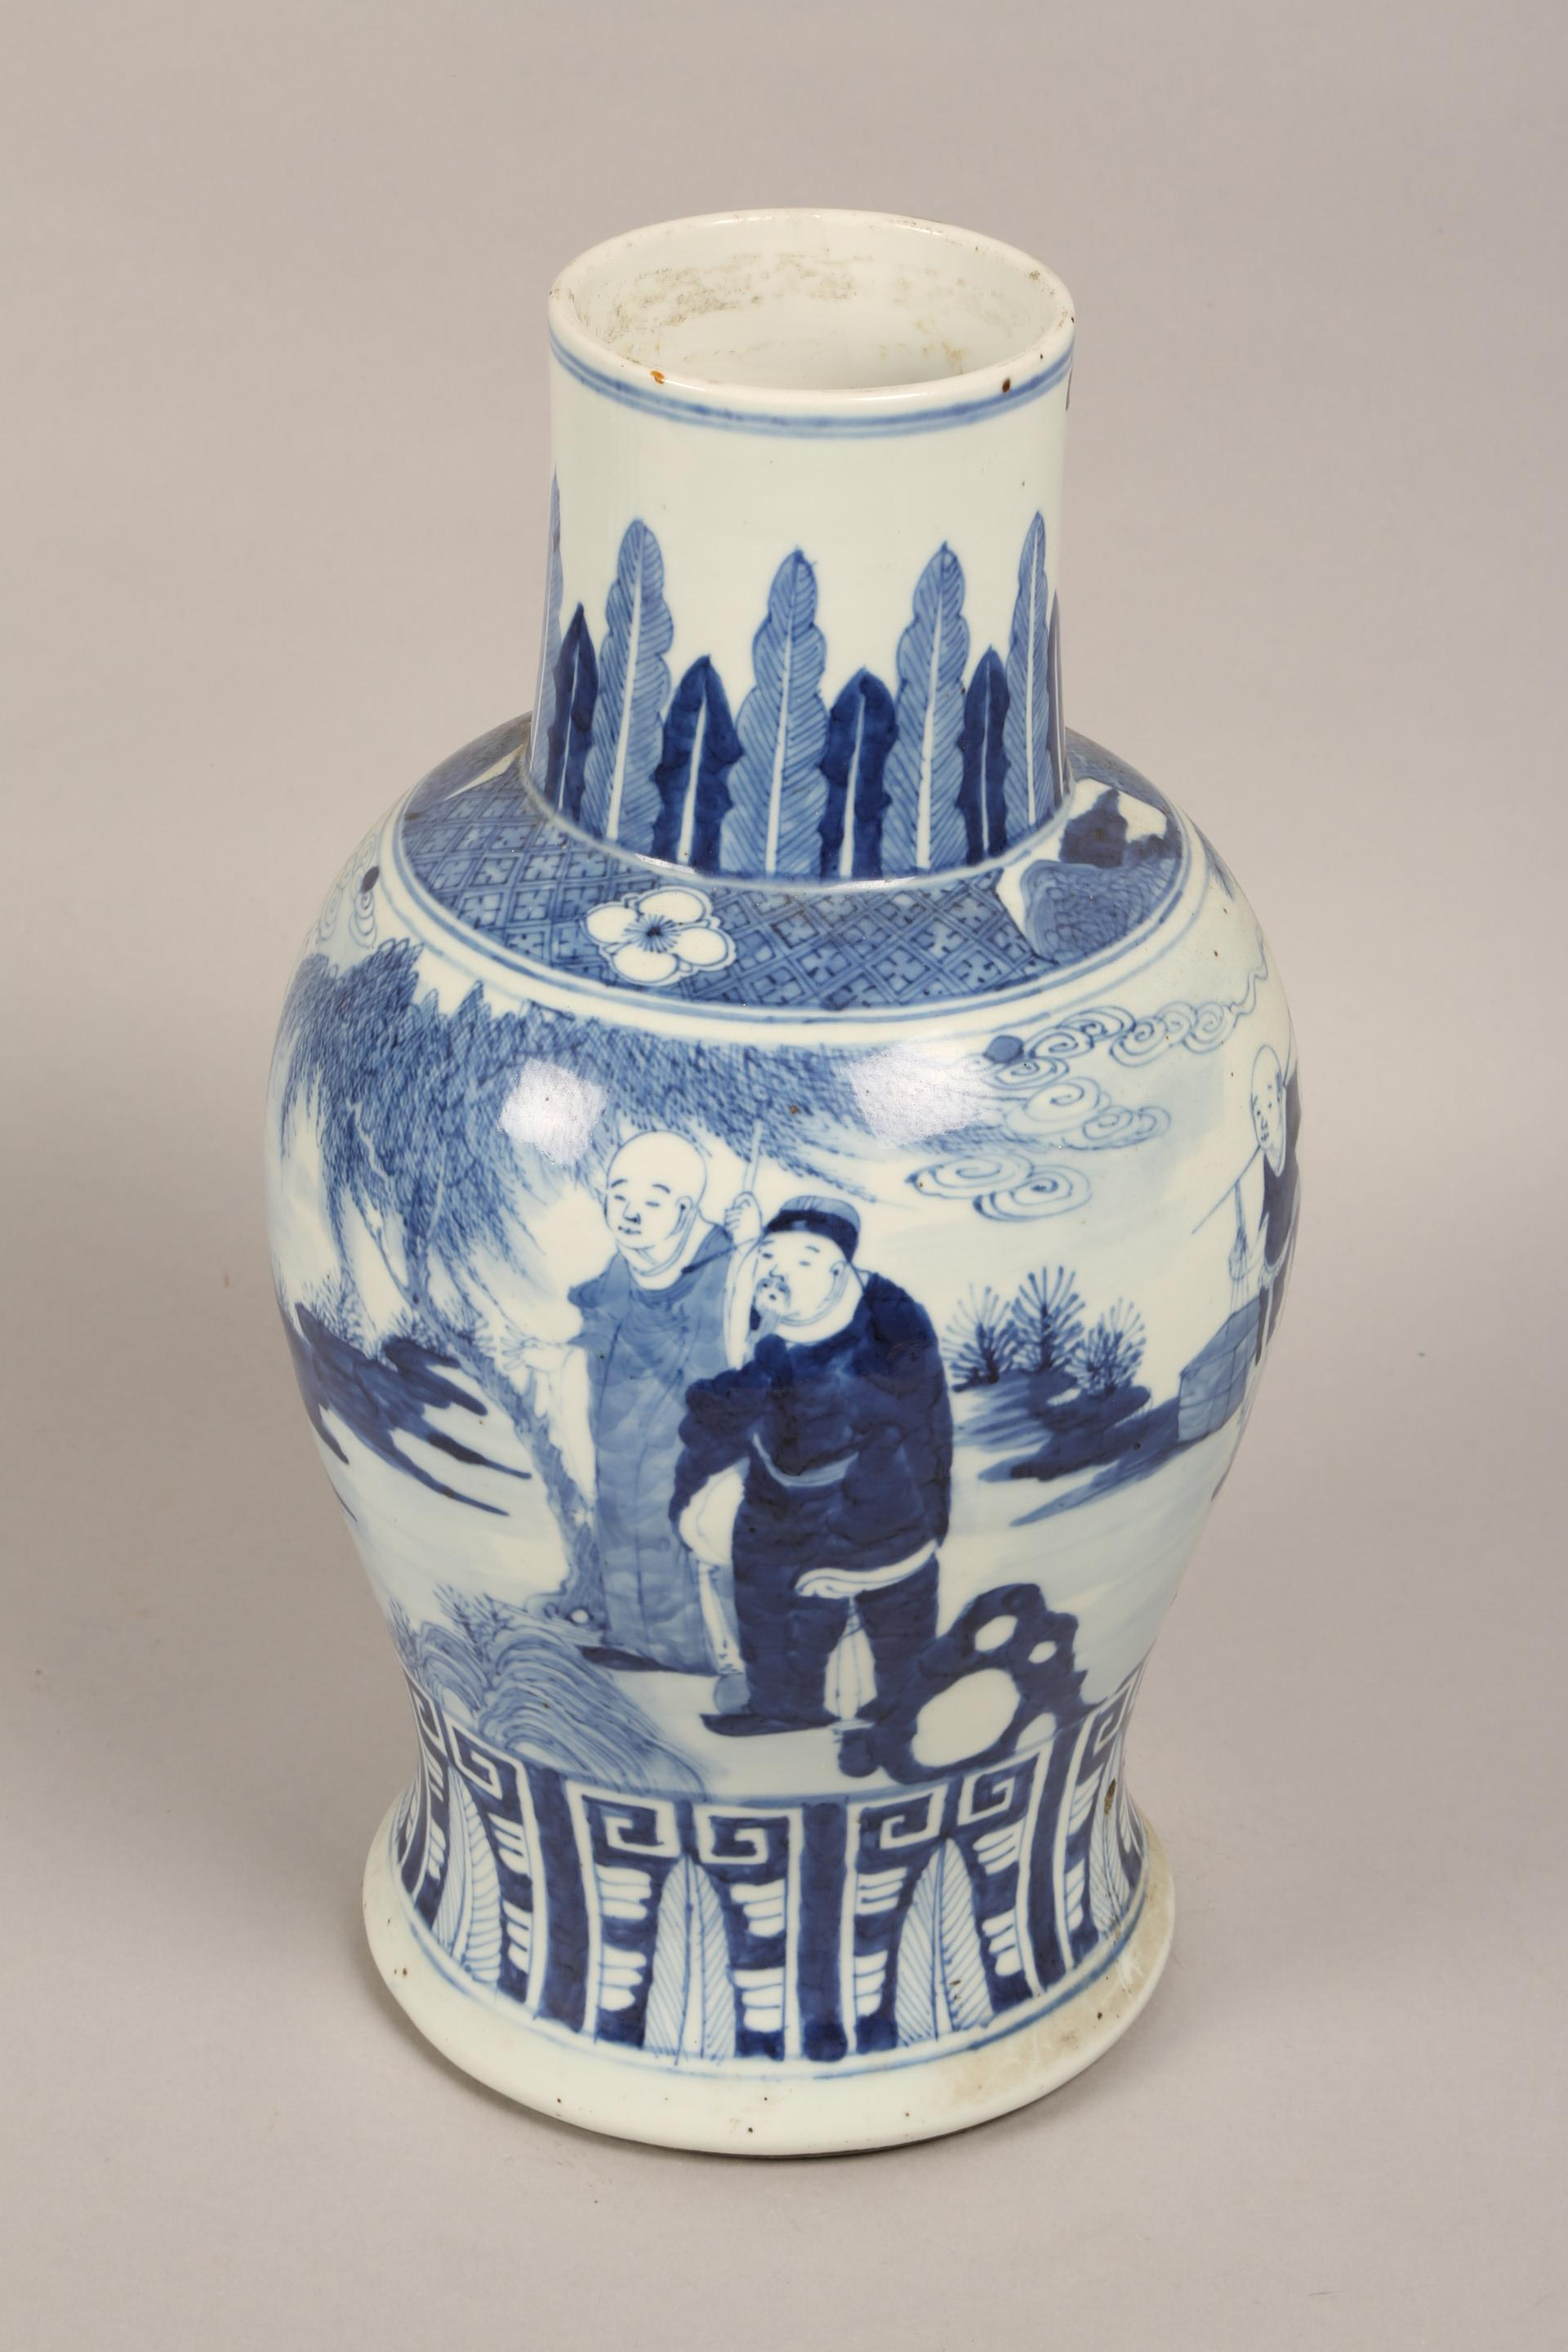 19th century Chinese blue and white vase of baluster form, decorated with figures in a landscape ( - Image 5 of 6